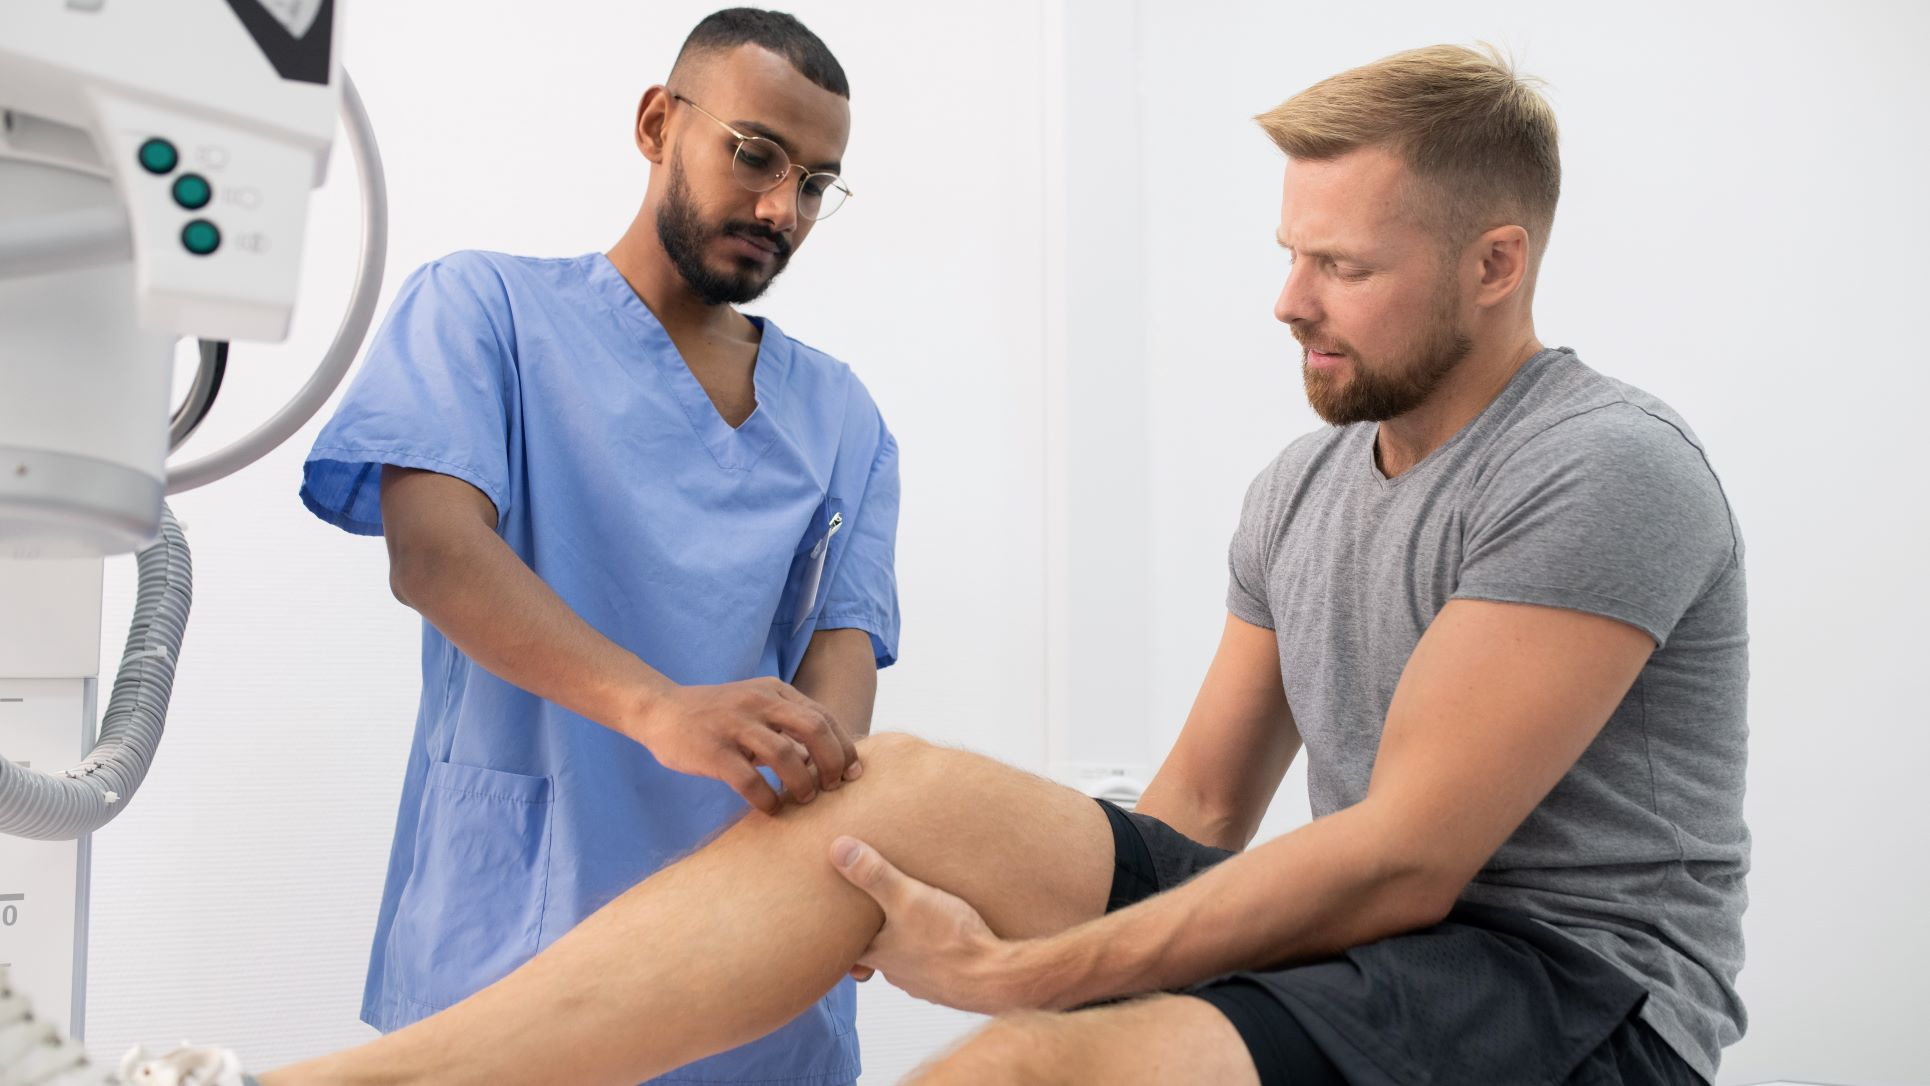 Physician examining patients knee